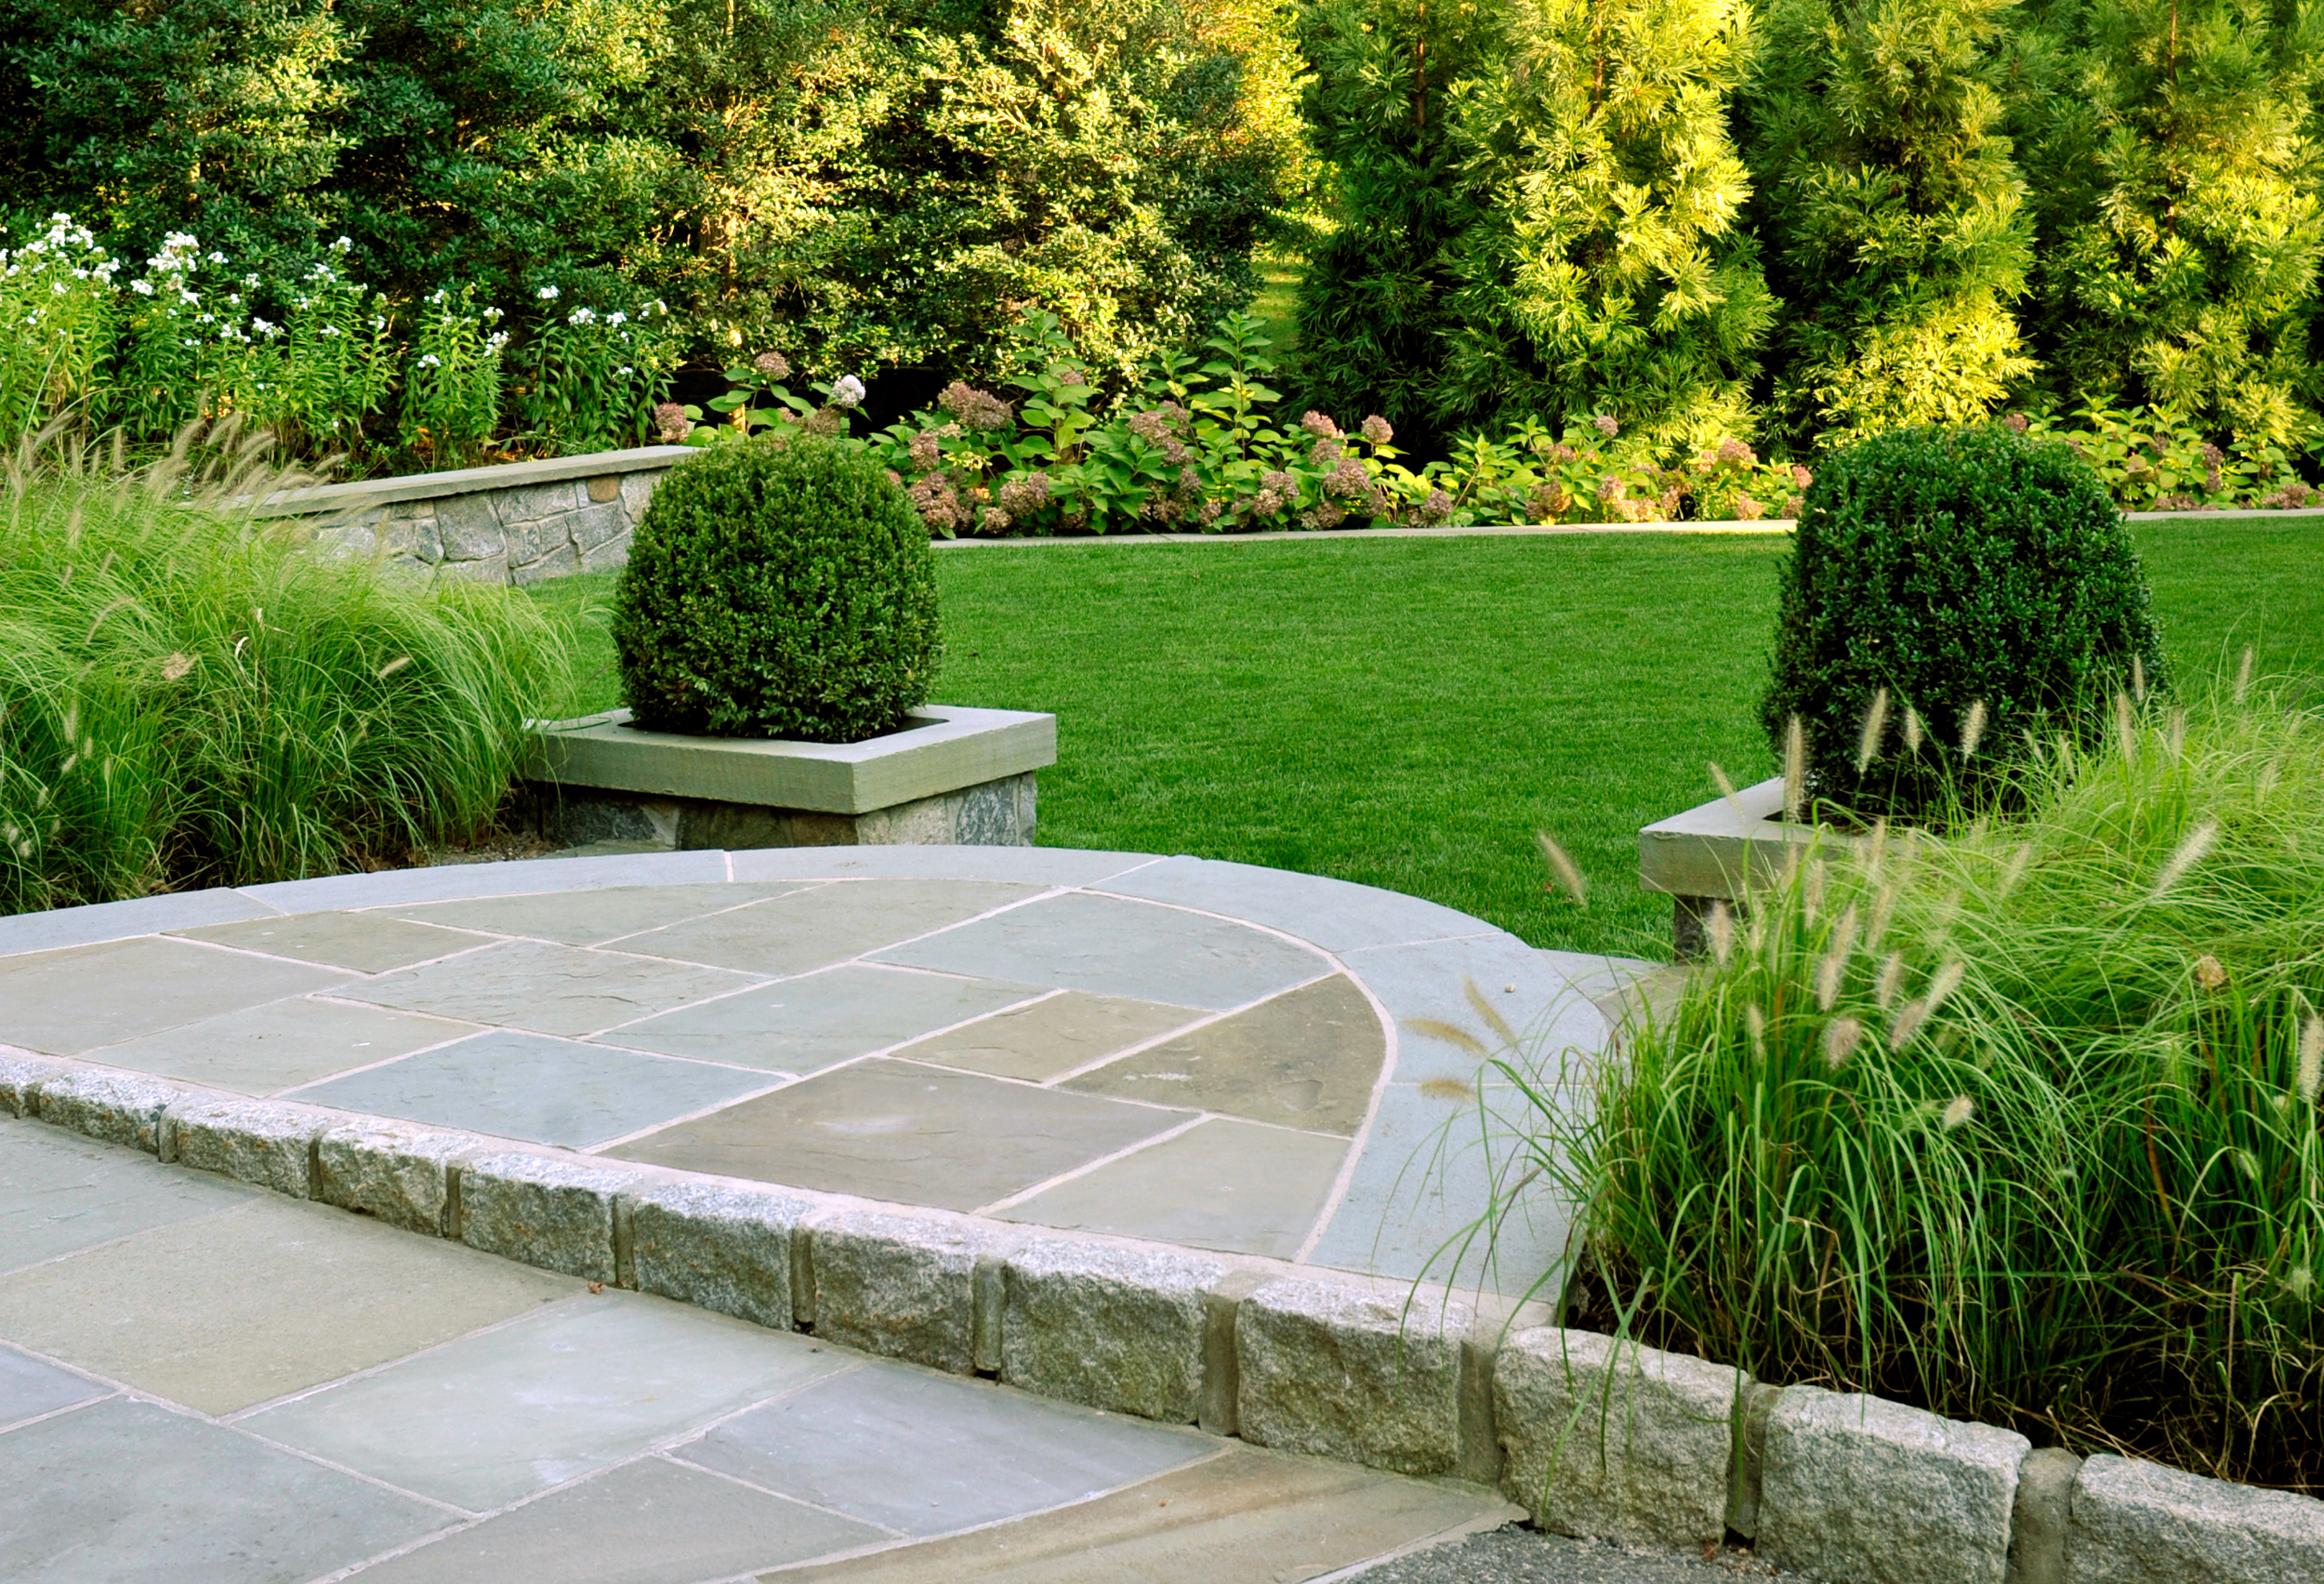 Private garden with stone patio and woodland plantings